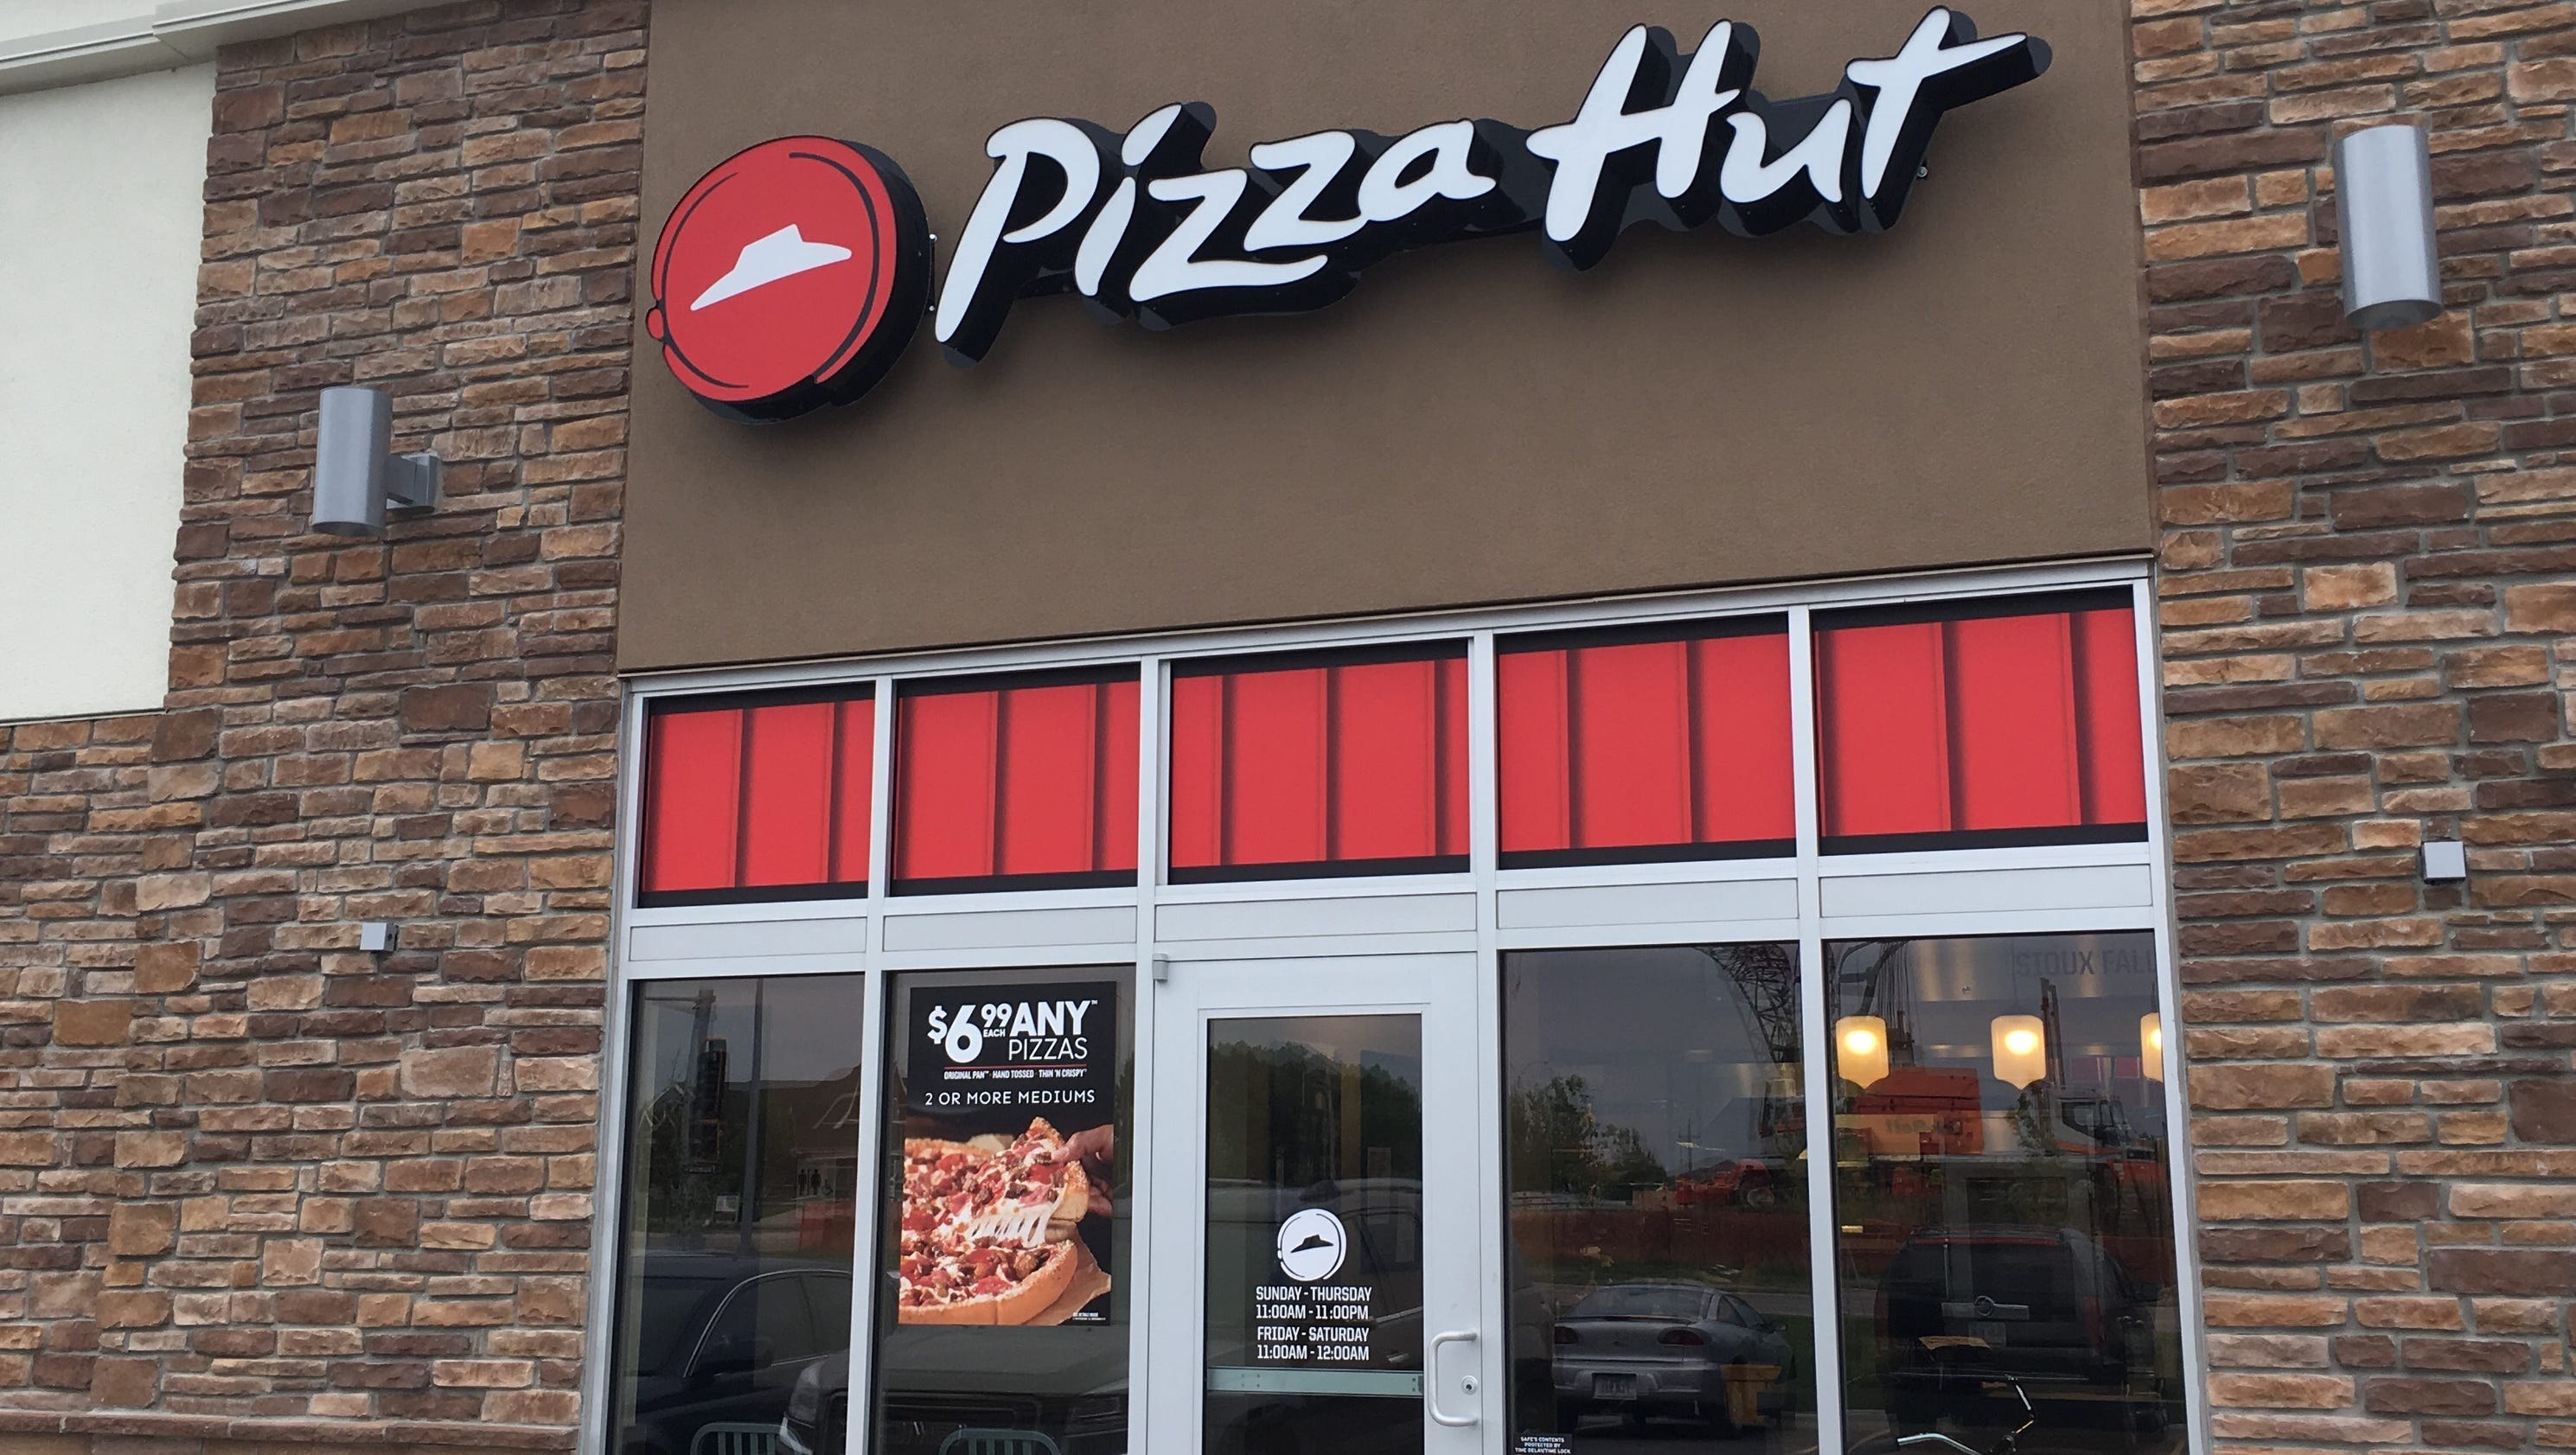 View our full menu, see nutritional information, find store locations, and more. Pizza Hut: Pizza Delivery | Pizza Carryout | Coupons | Wings & More Order pizza online for fast delivery or .